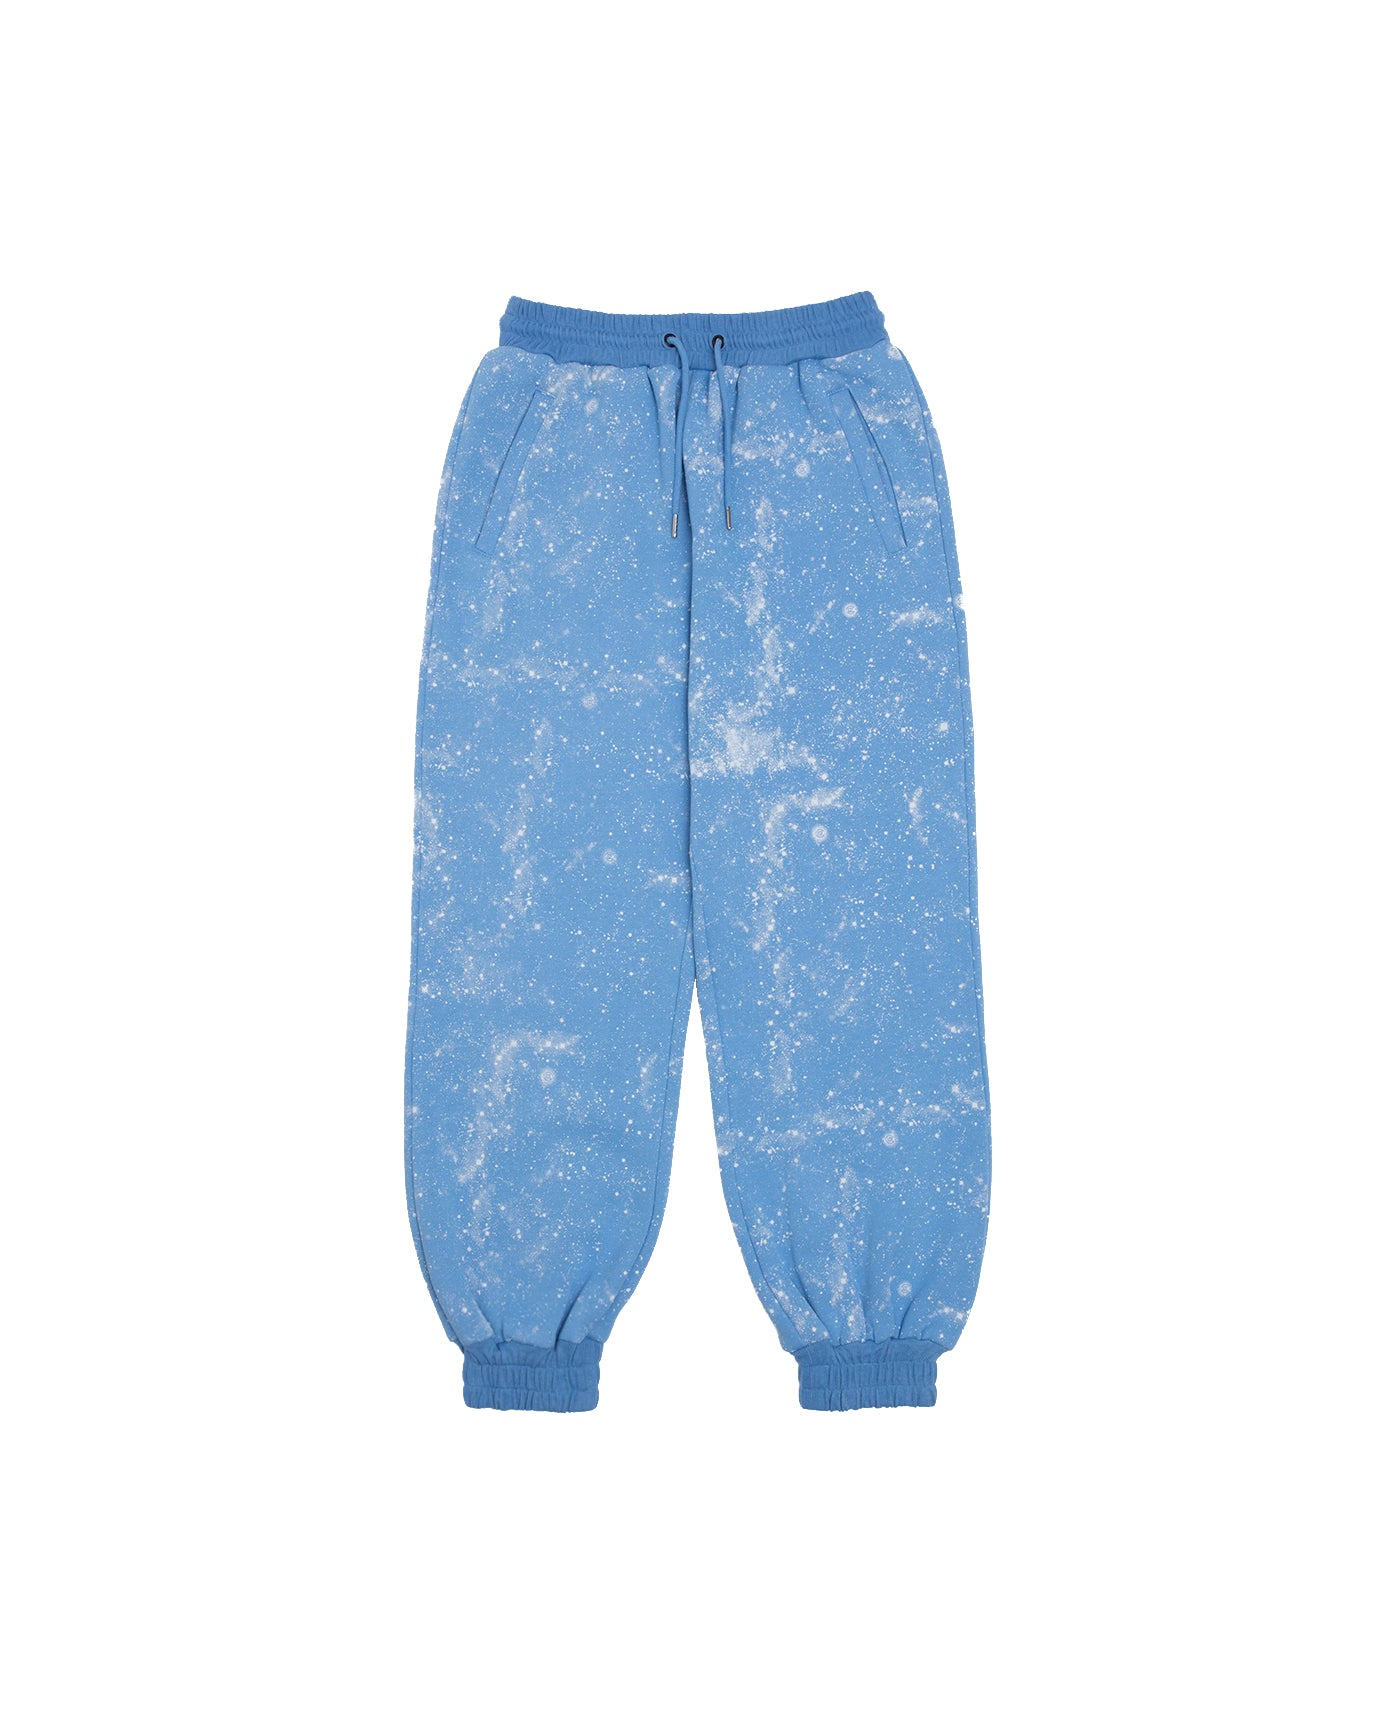 STARS ALL OVER SWEAT PANTS (BLUE)